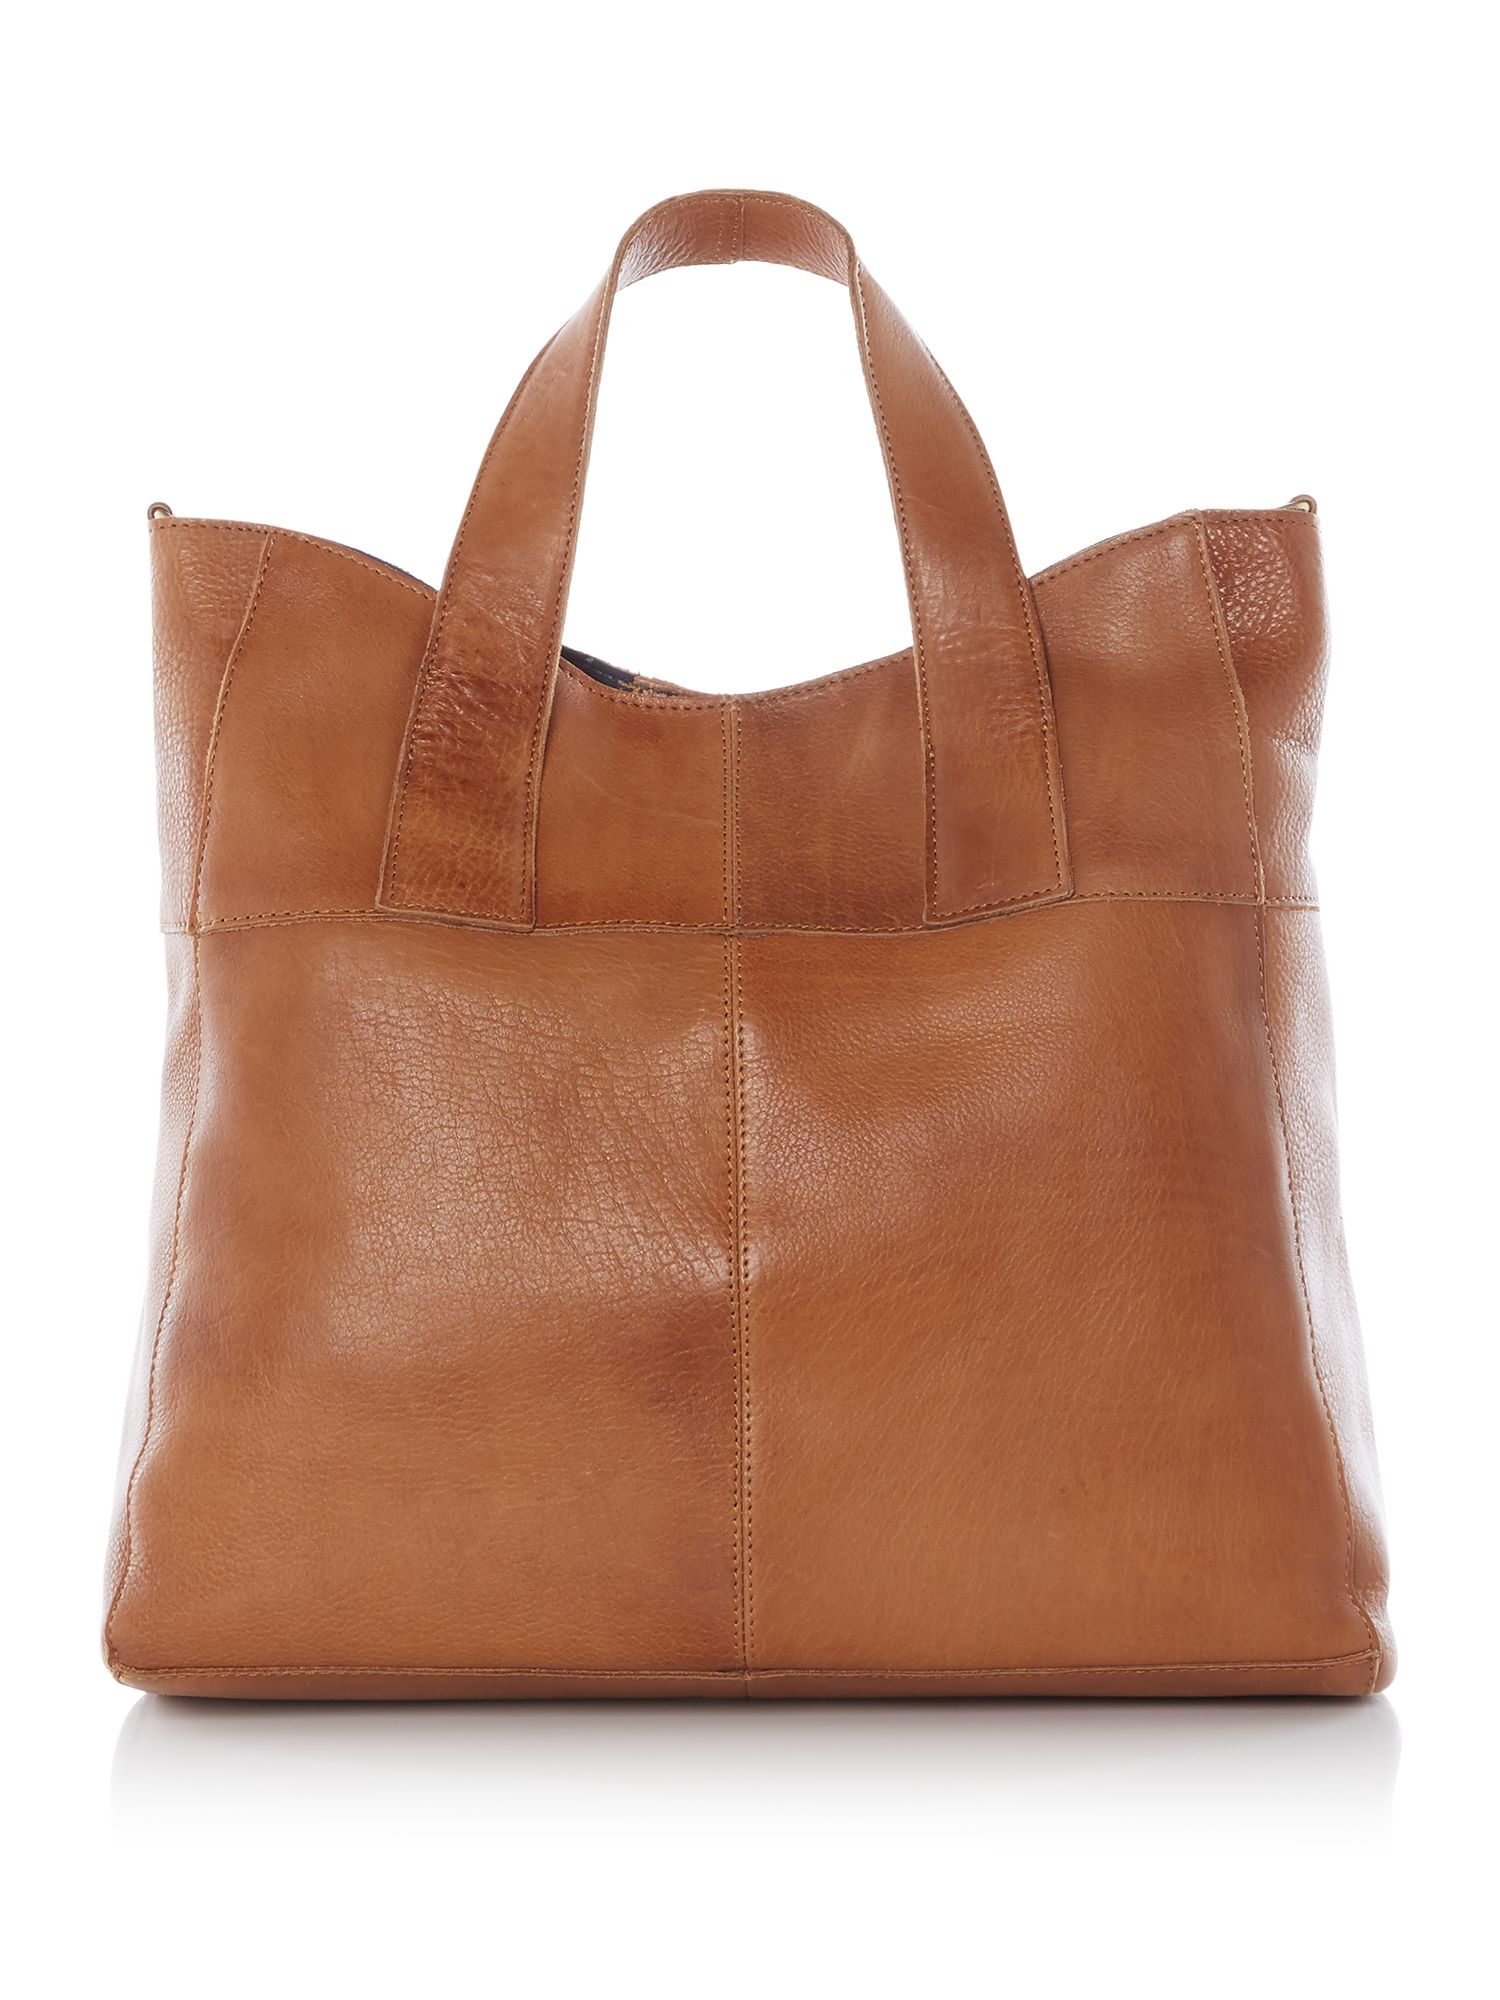 Maison De Nimes Tammy Leather Tote Bag ...